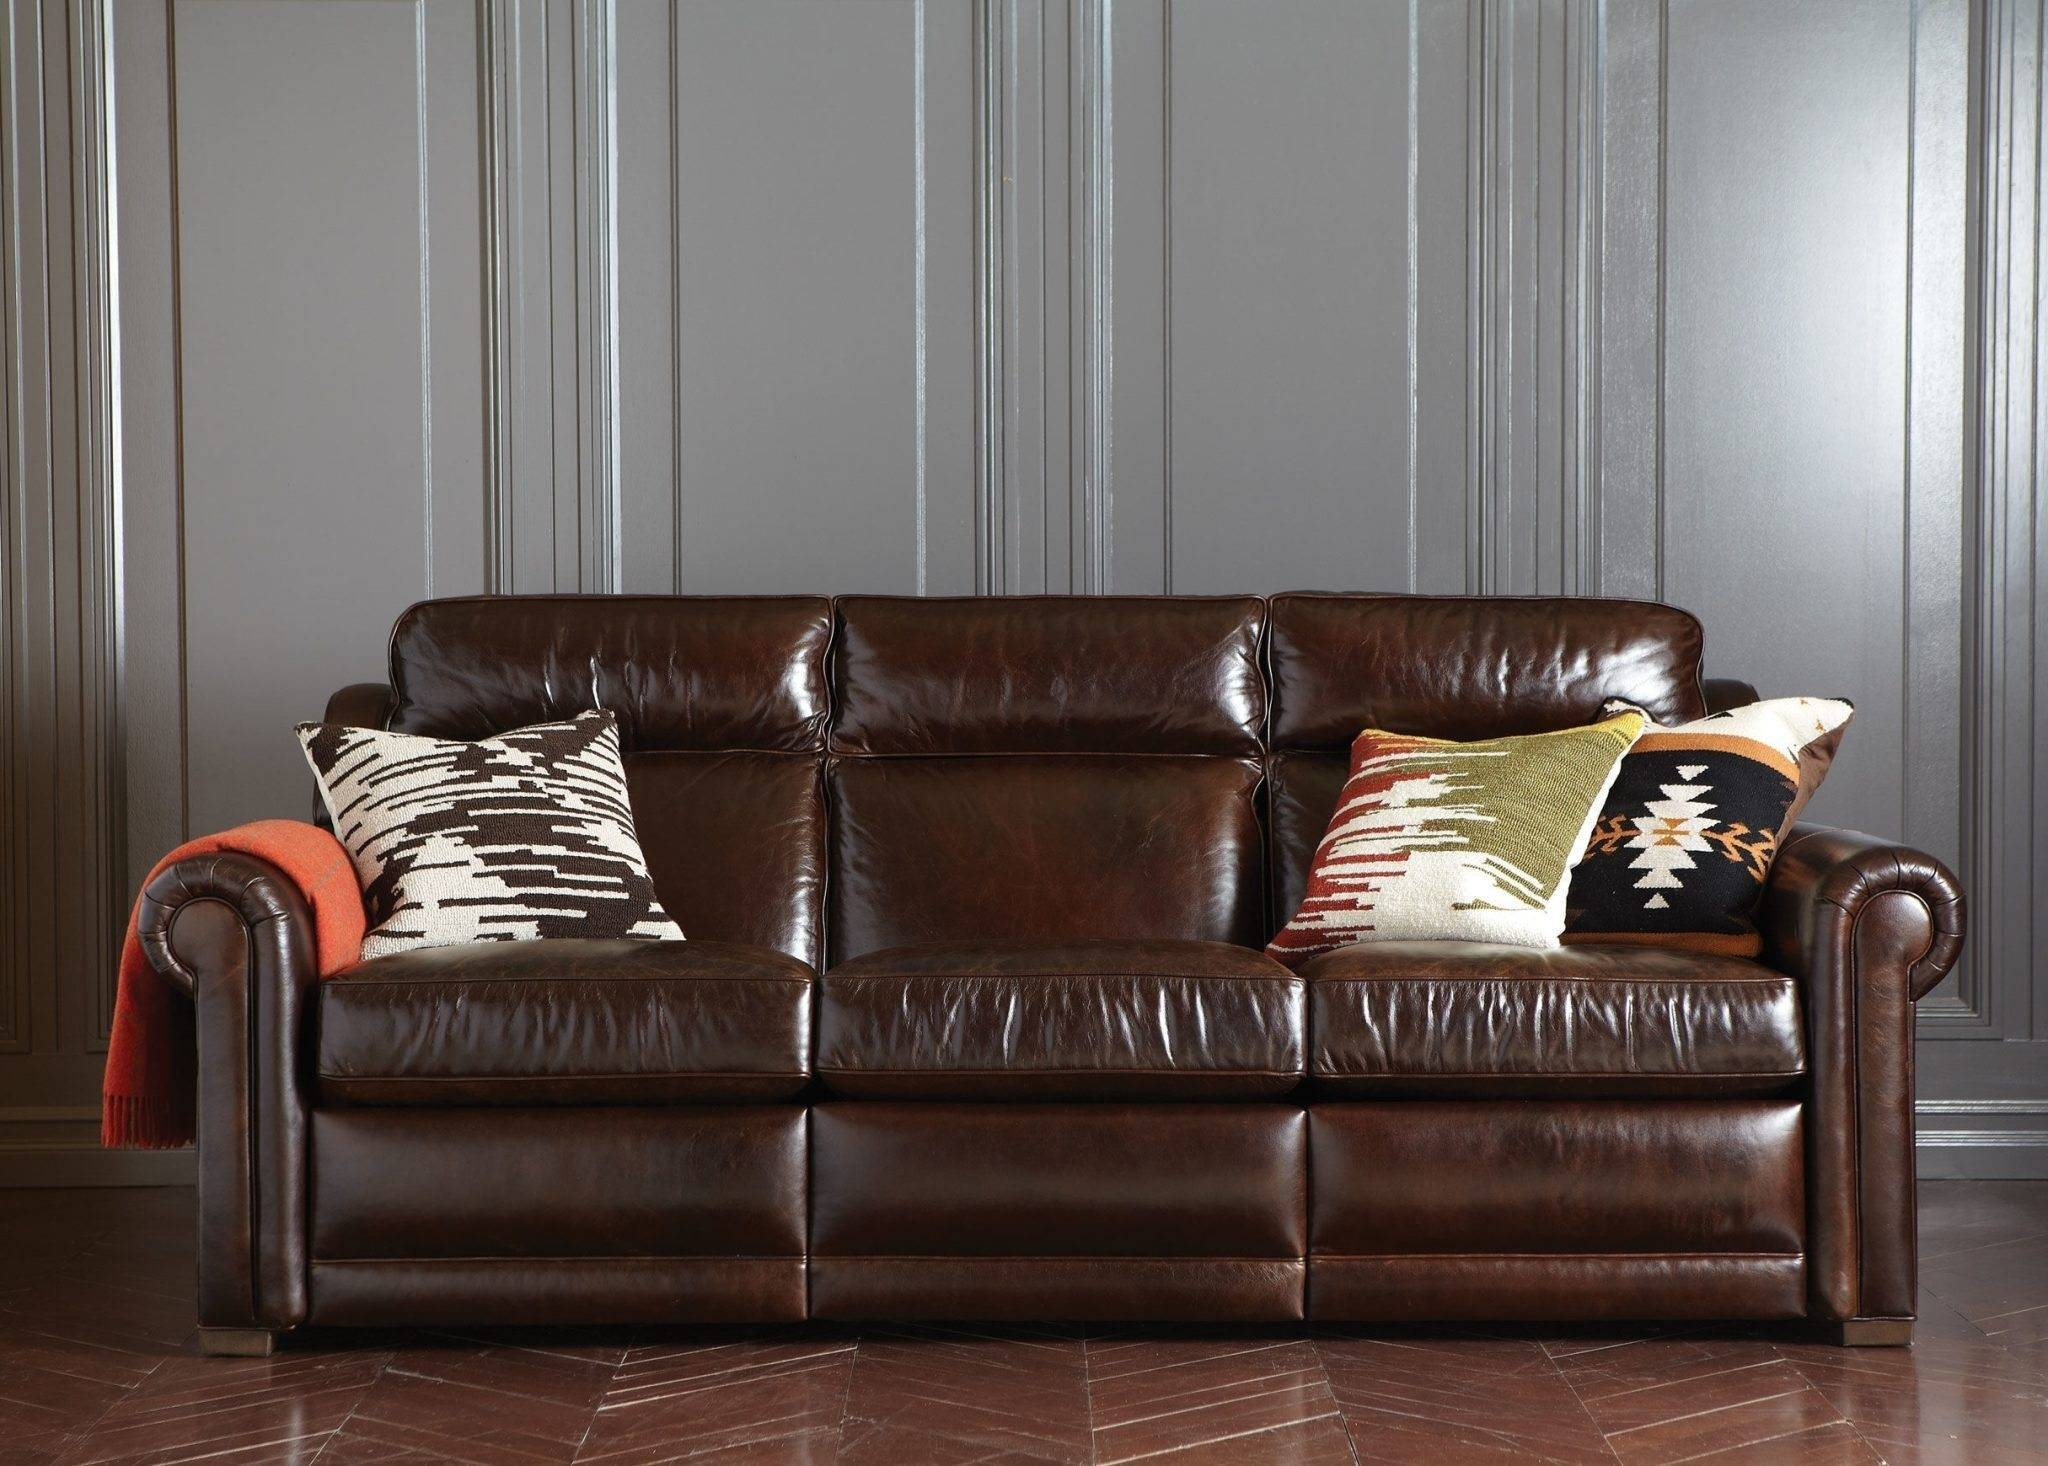 Sleeper Sofa San Diego With Concept Hd Images 17864 | Kengire with regard to Sleeper Sofas San Diego (Image 17 of 25)